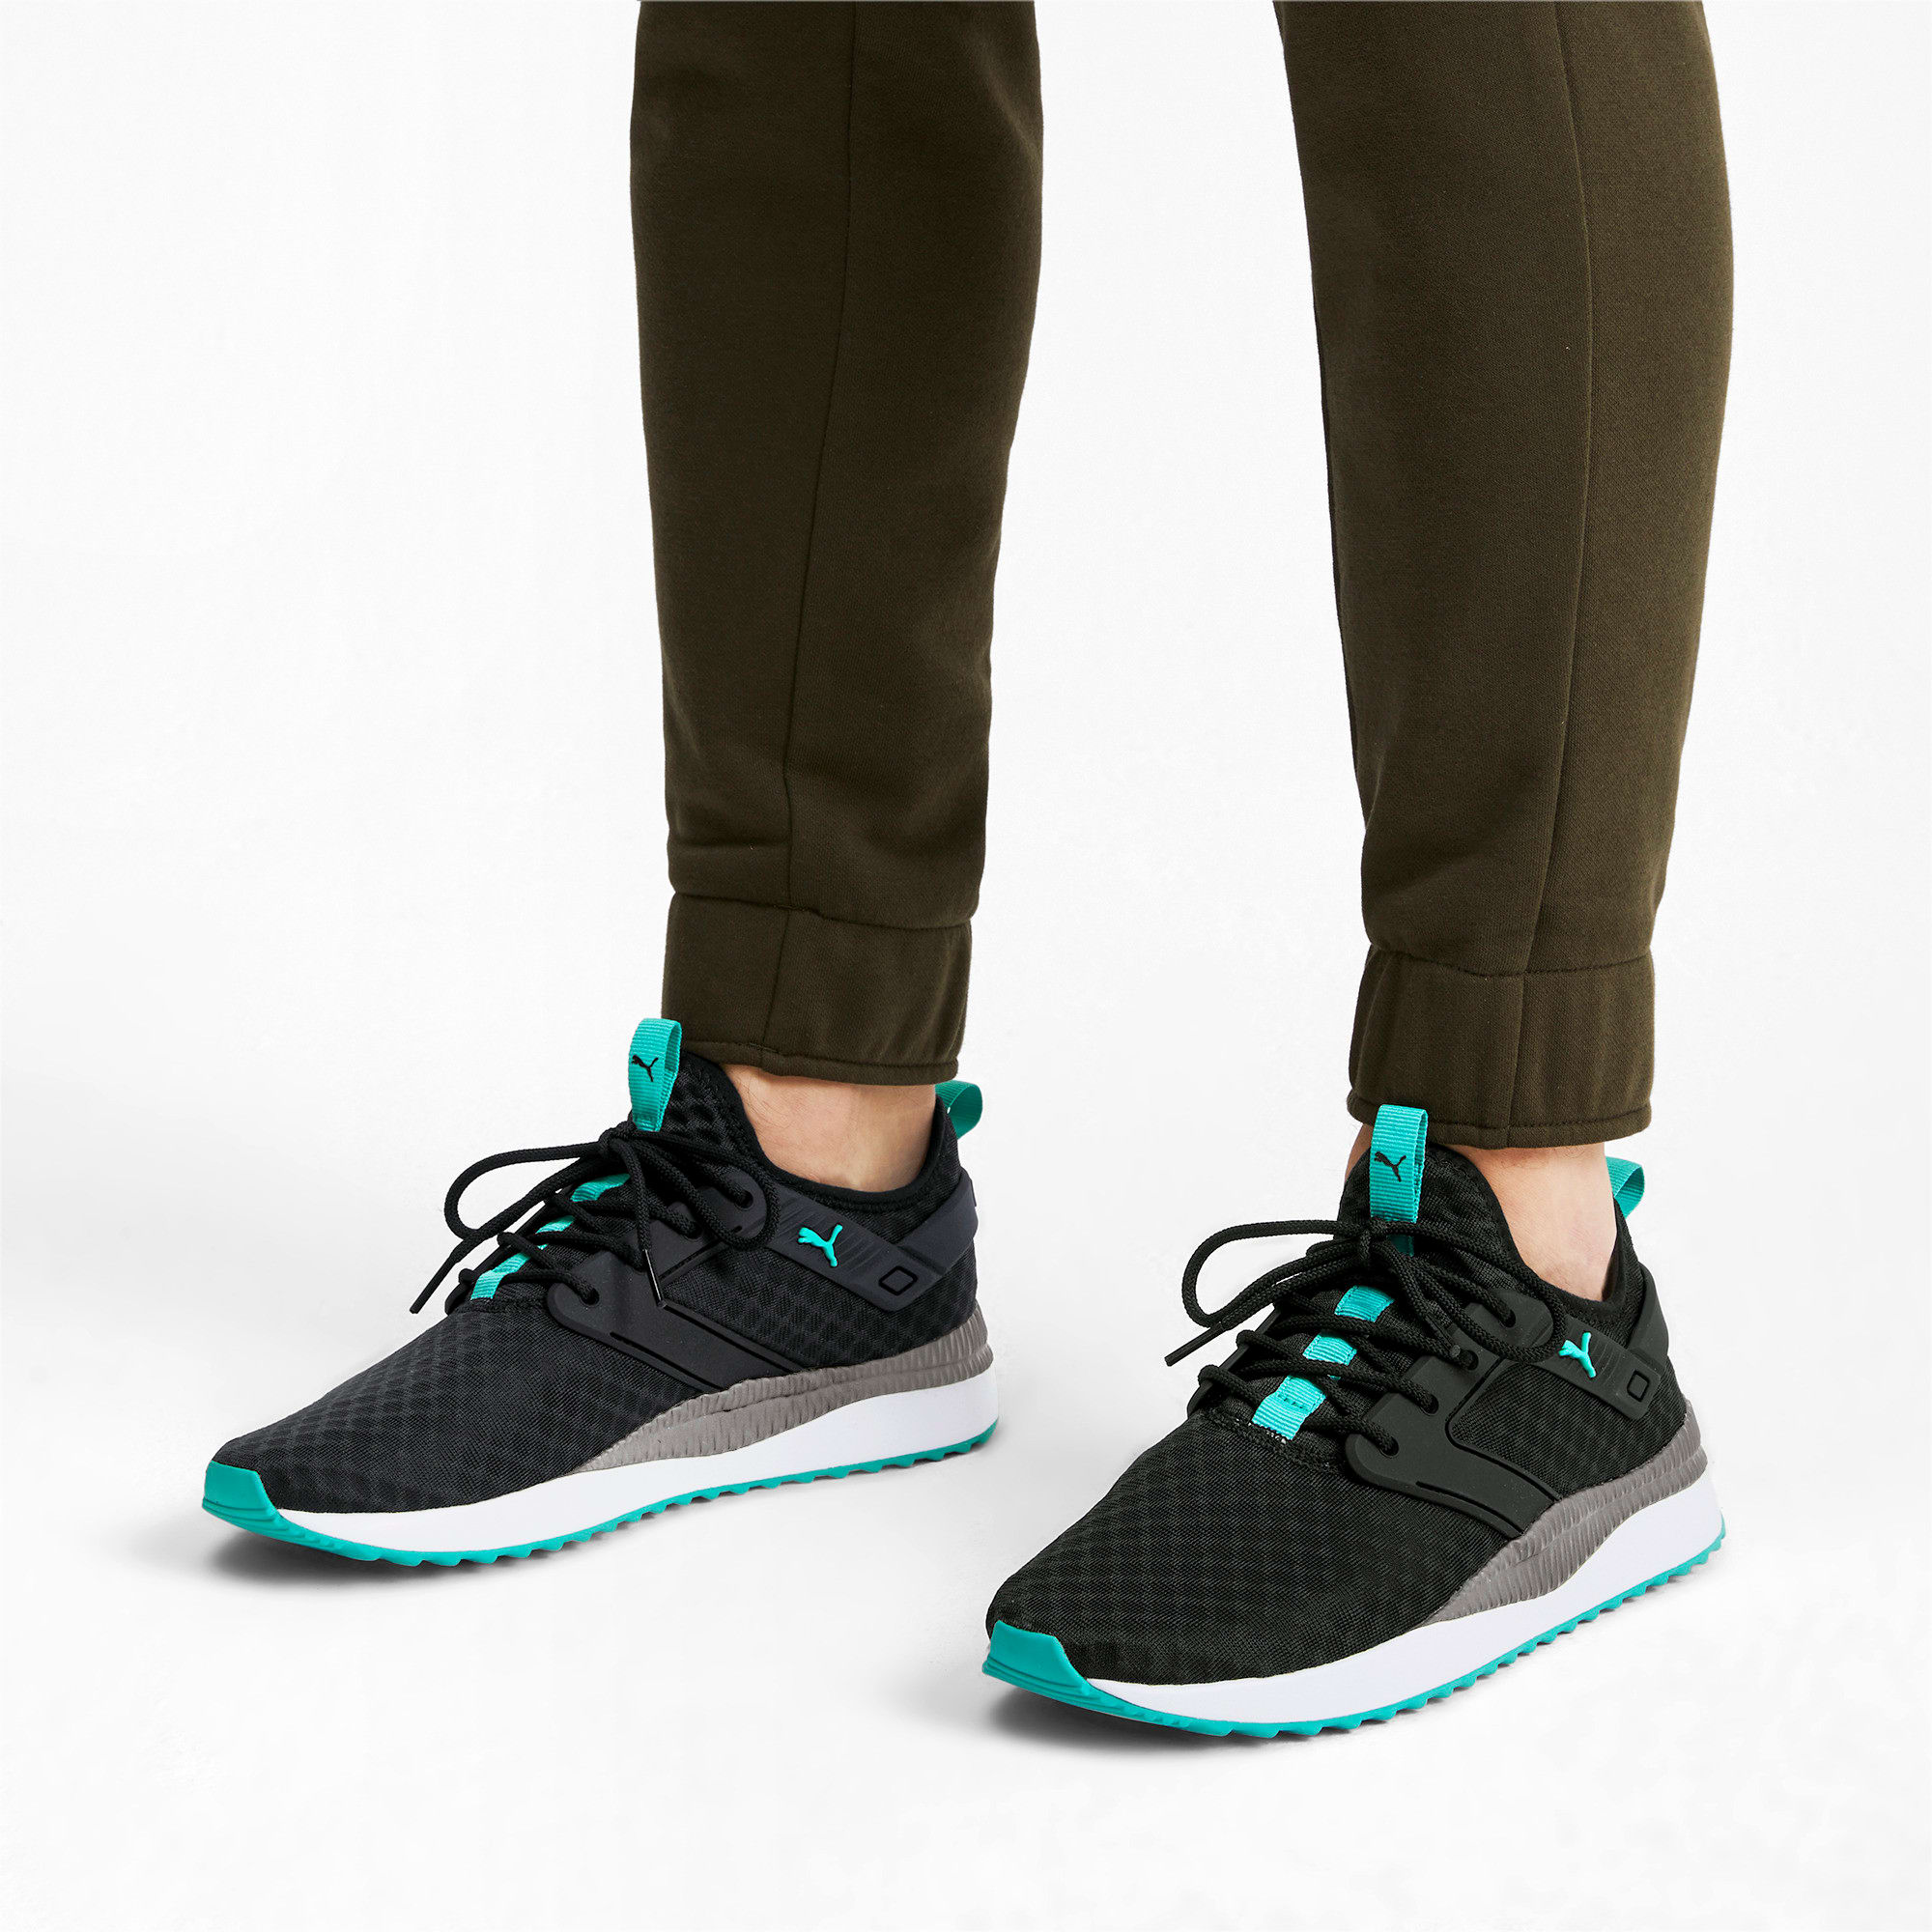 Thumbnail 2 of Pacer Next Excel Running Shoes, Puma Black-Blue Turquoise, medium